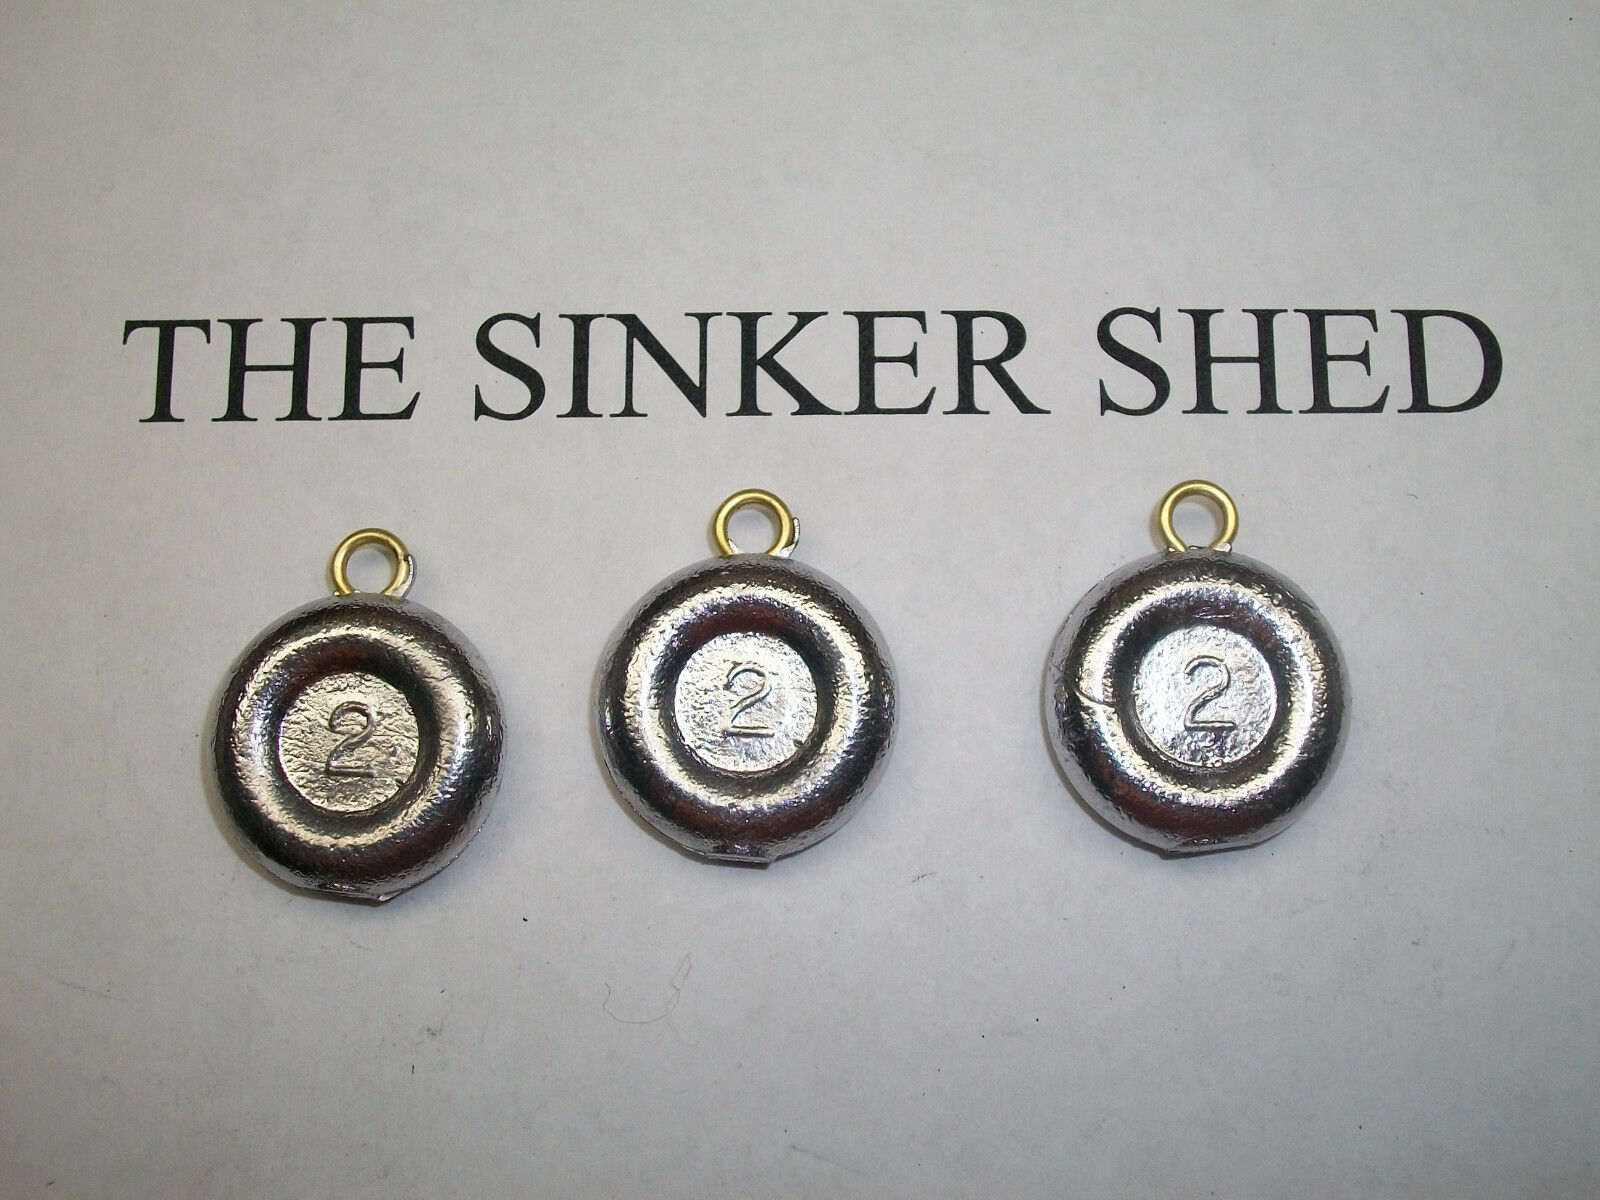 2 oz river   surf coin sinkers   - quantity of 6 12 25 50 100 200 FREE SHIPPING  sale online discount